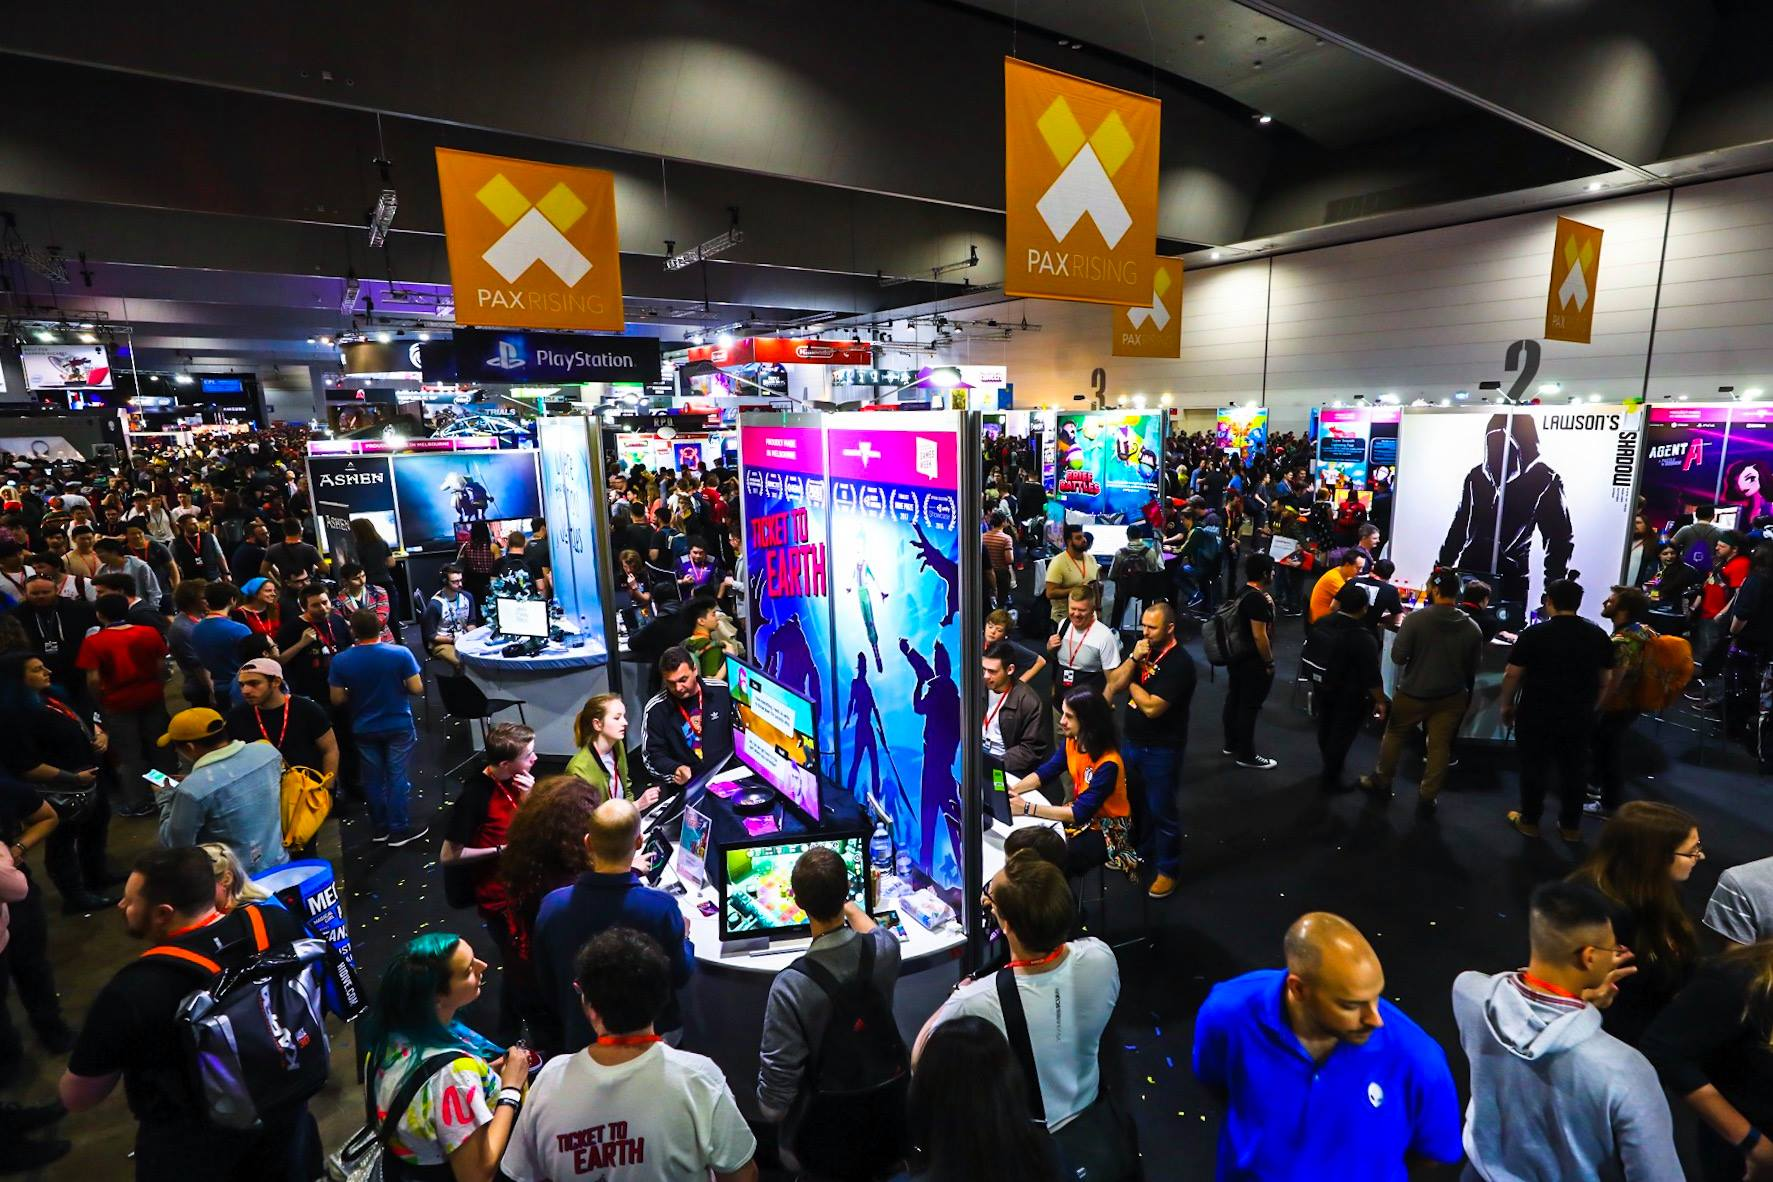 Photo credit: PAX Australia facebook page